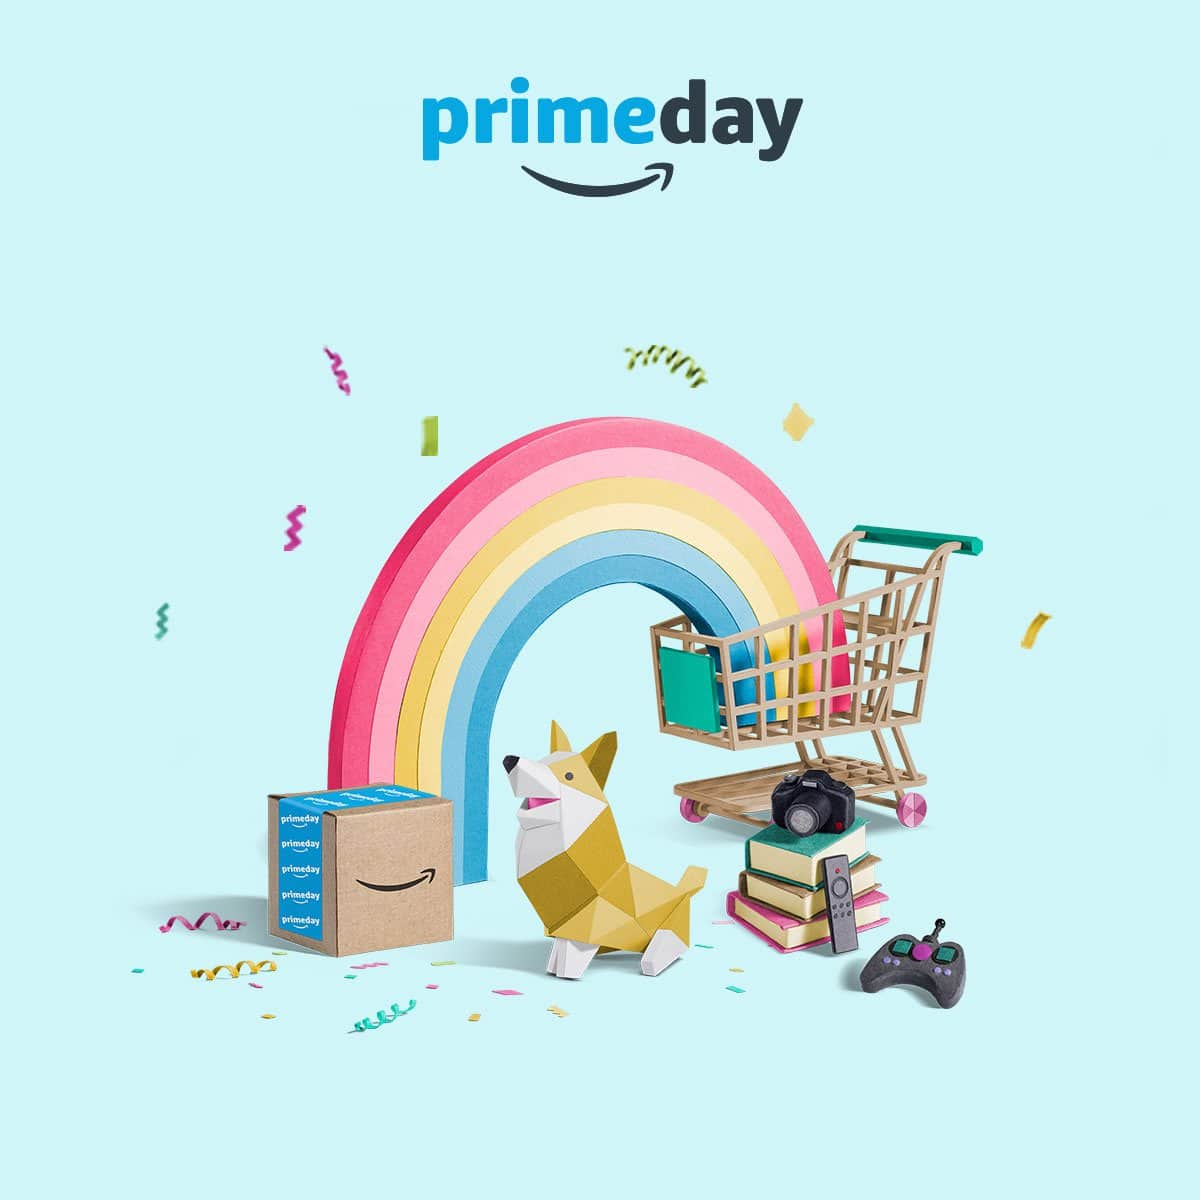 Reuters: Amazon to delay Prime Day event due to ...Amazon Prime Day